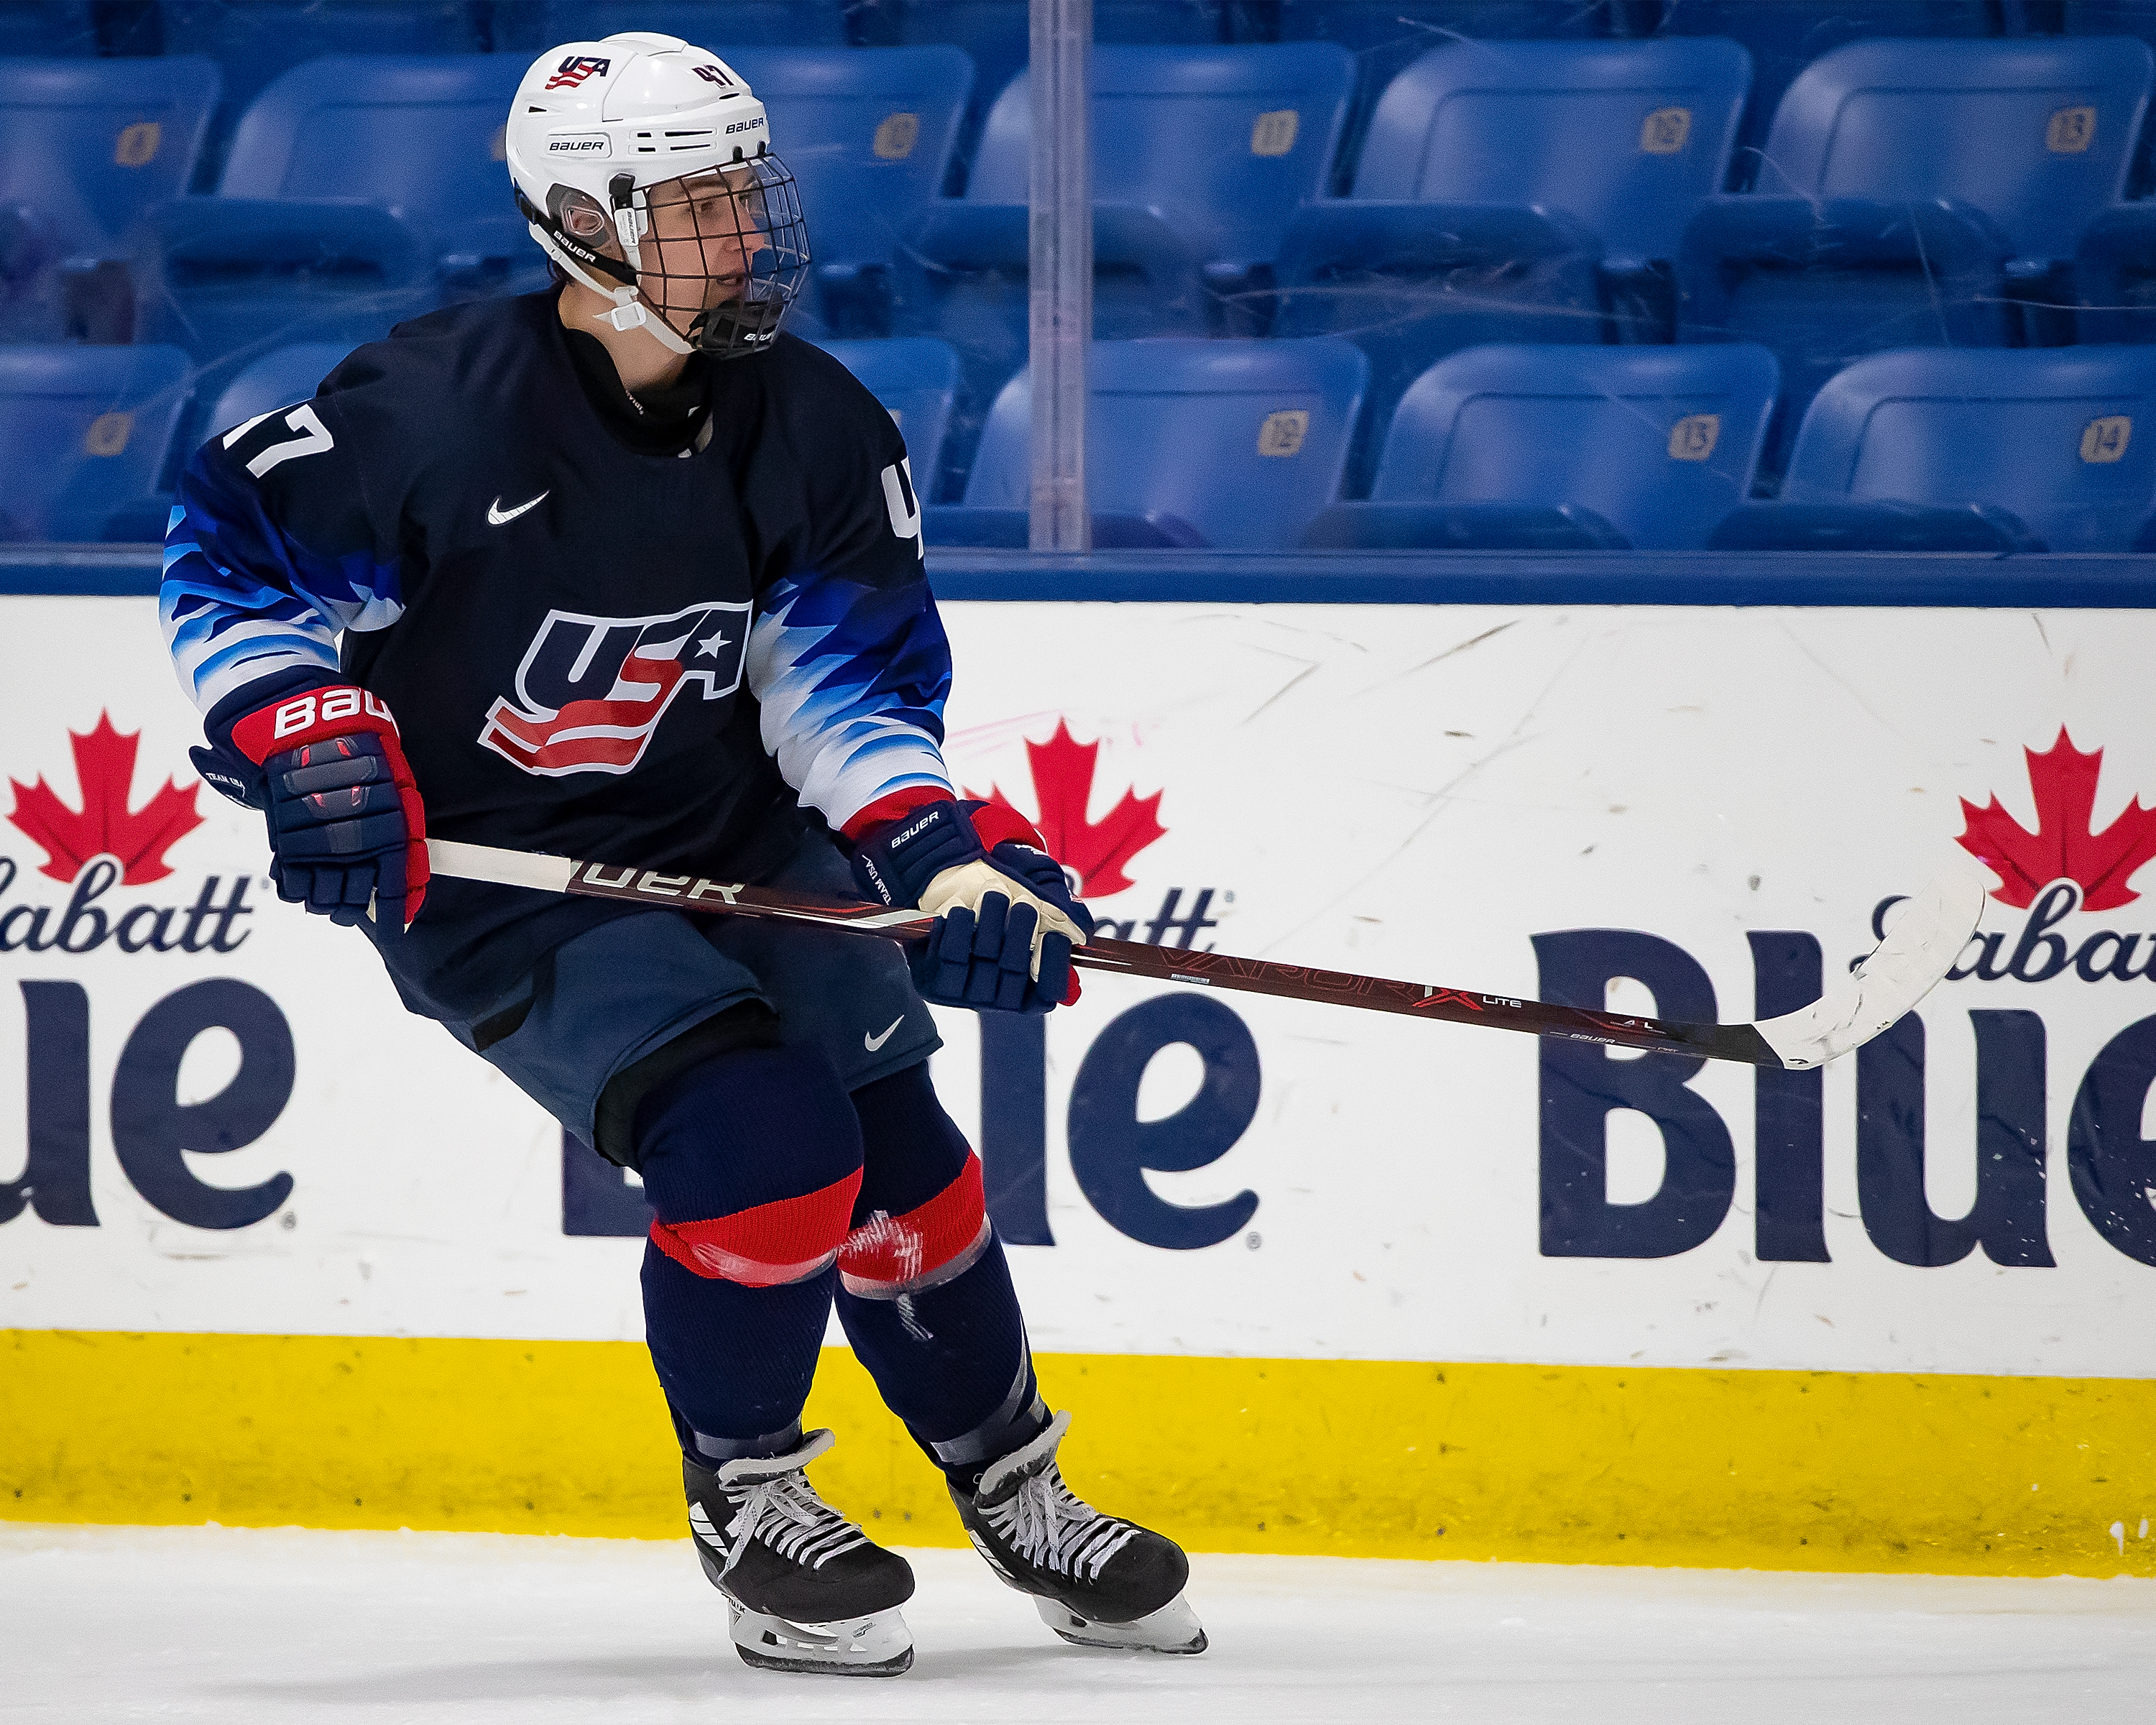 Thomas Bordeleau #47 of the U.S. Nationals follows the play against the Switzerland Nationals during day-2 of game two of the 2018 Under-17 Four Nations Tournament at USA Hockey Arena on December 12, 2018 in Plymouth, Michigan. USA defeated Switzerland 3-1.